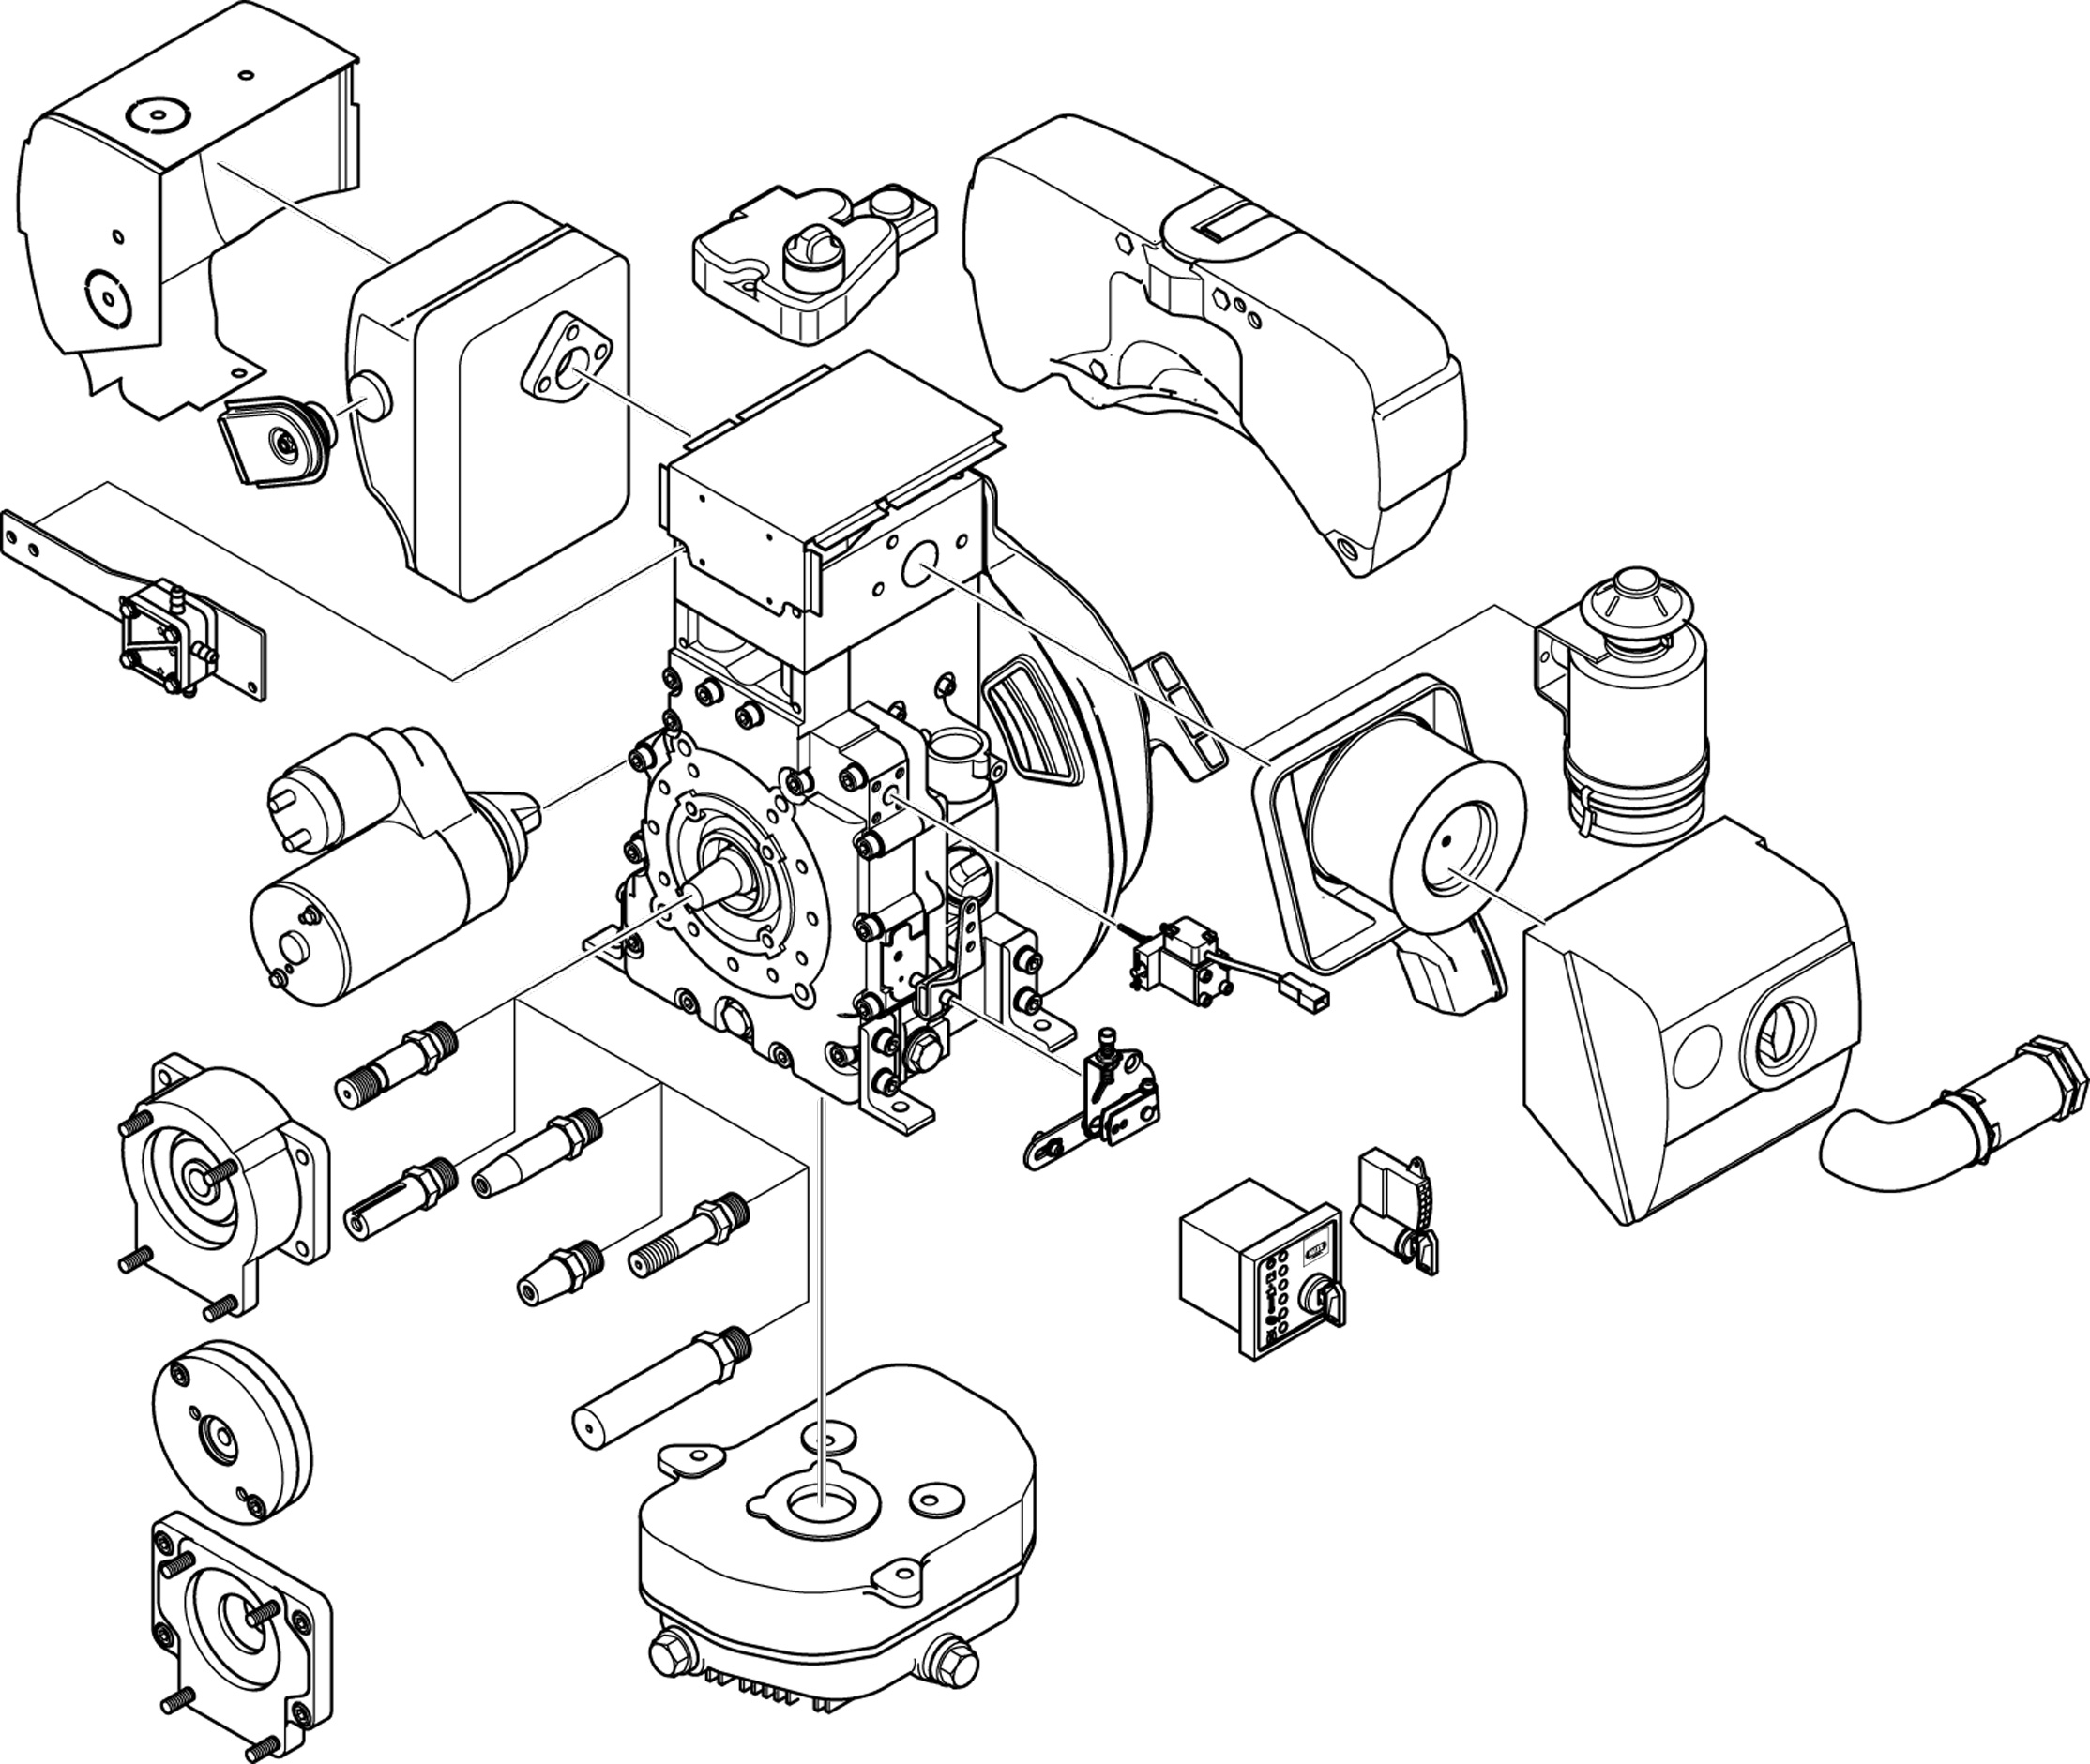 Engine Parts Drawing At Free For Personal Use Mazda B4000 Diagram 2228x1881 B Series Small Diesel Single Cylinder